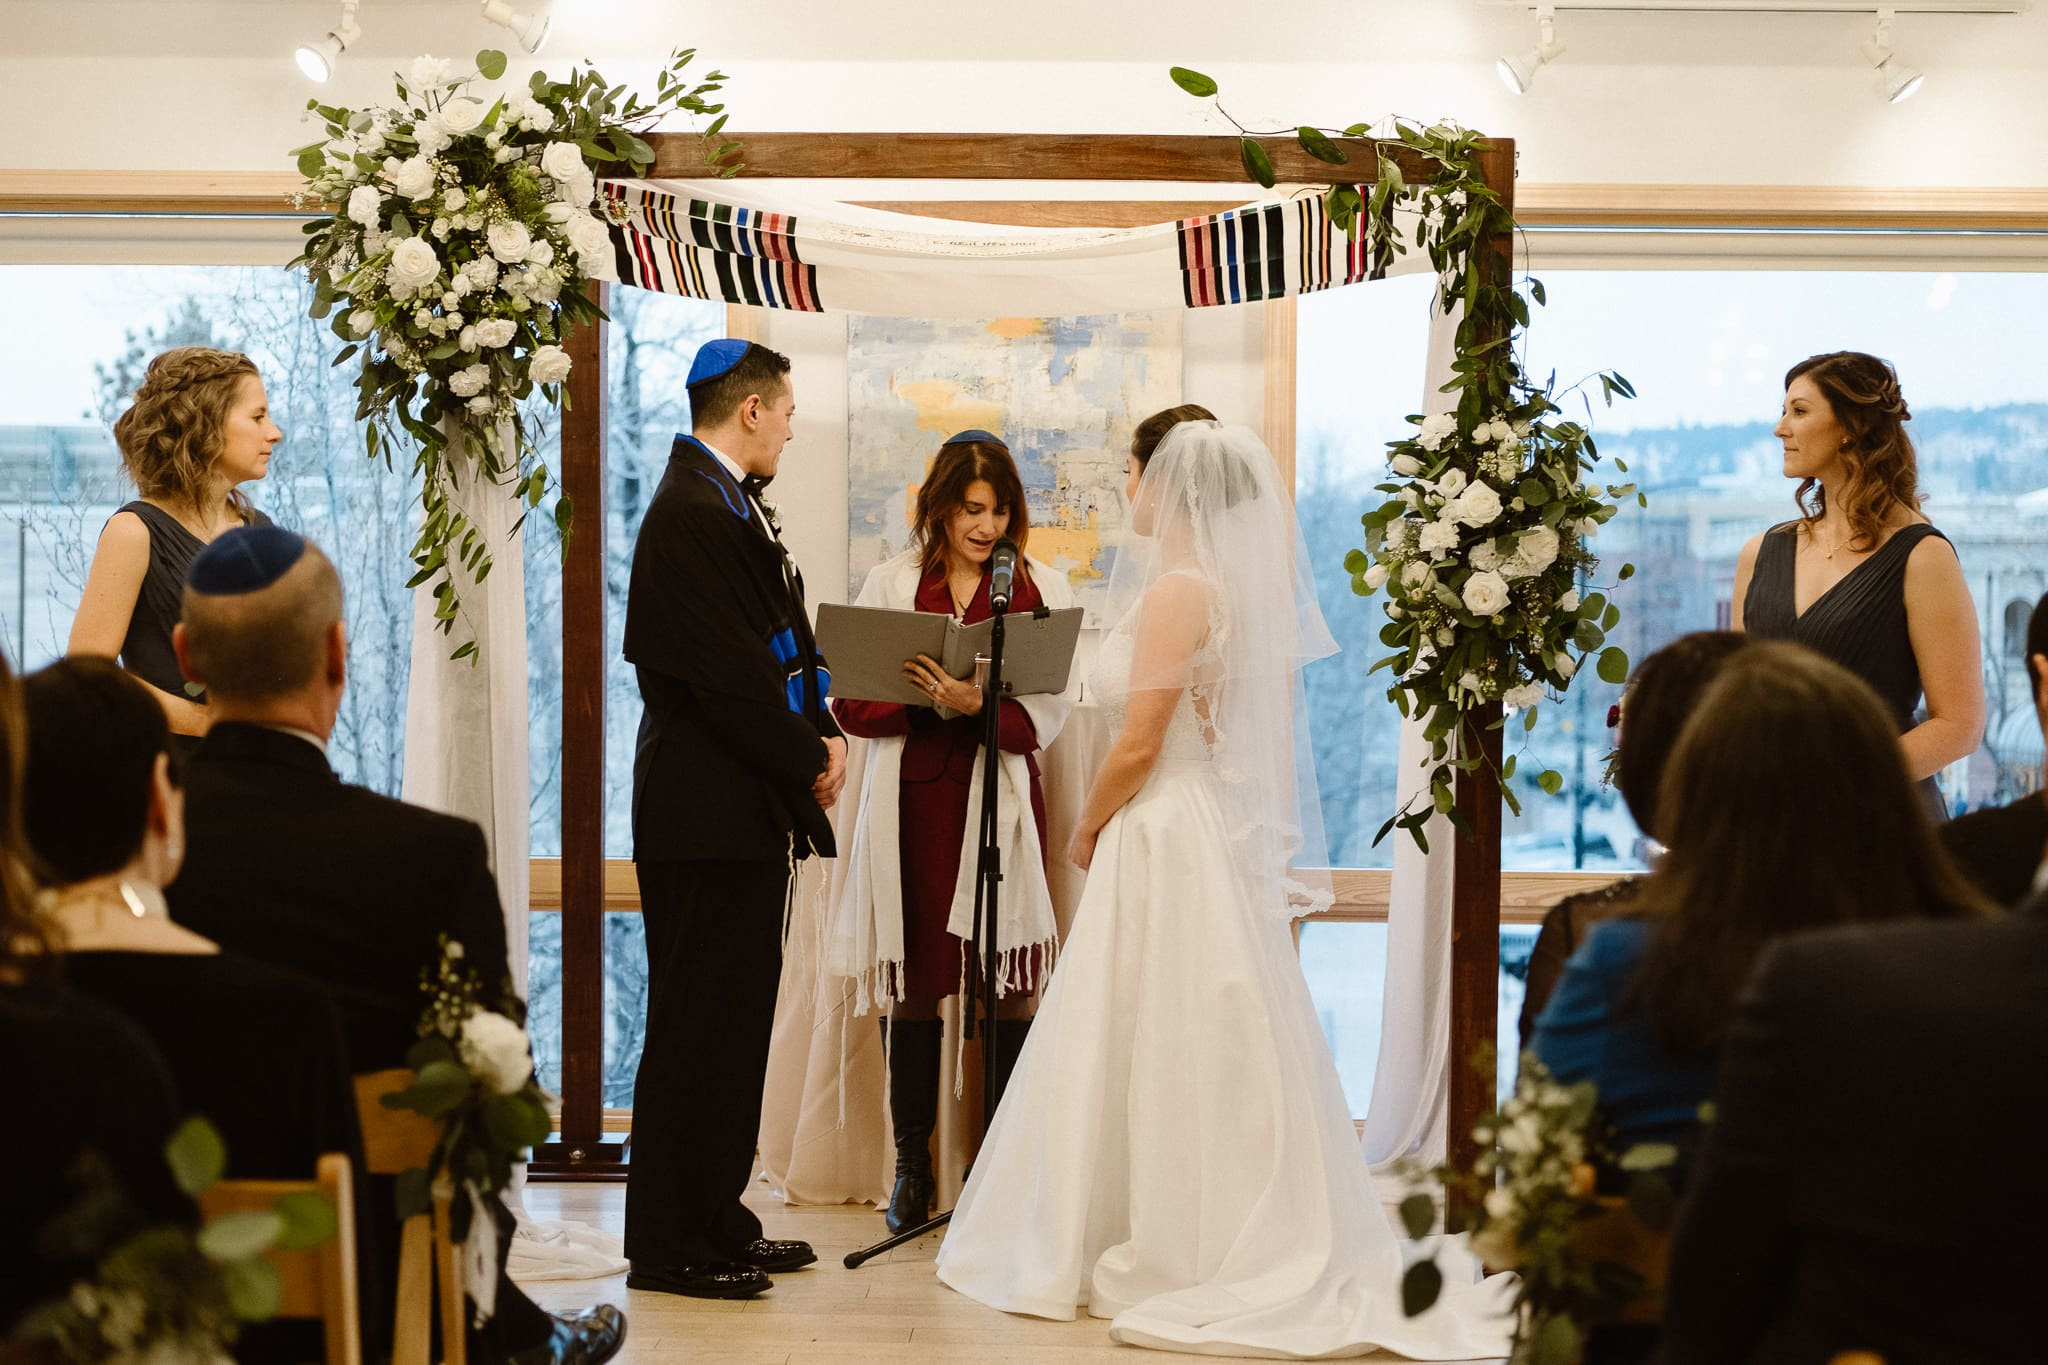 Rembrandt Yard wedding photographer, Boulder wedding photographer, Colorado Jewish wedding ceremony